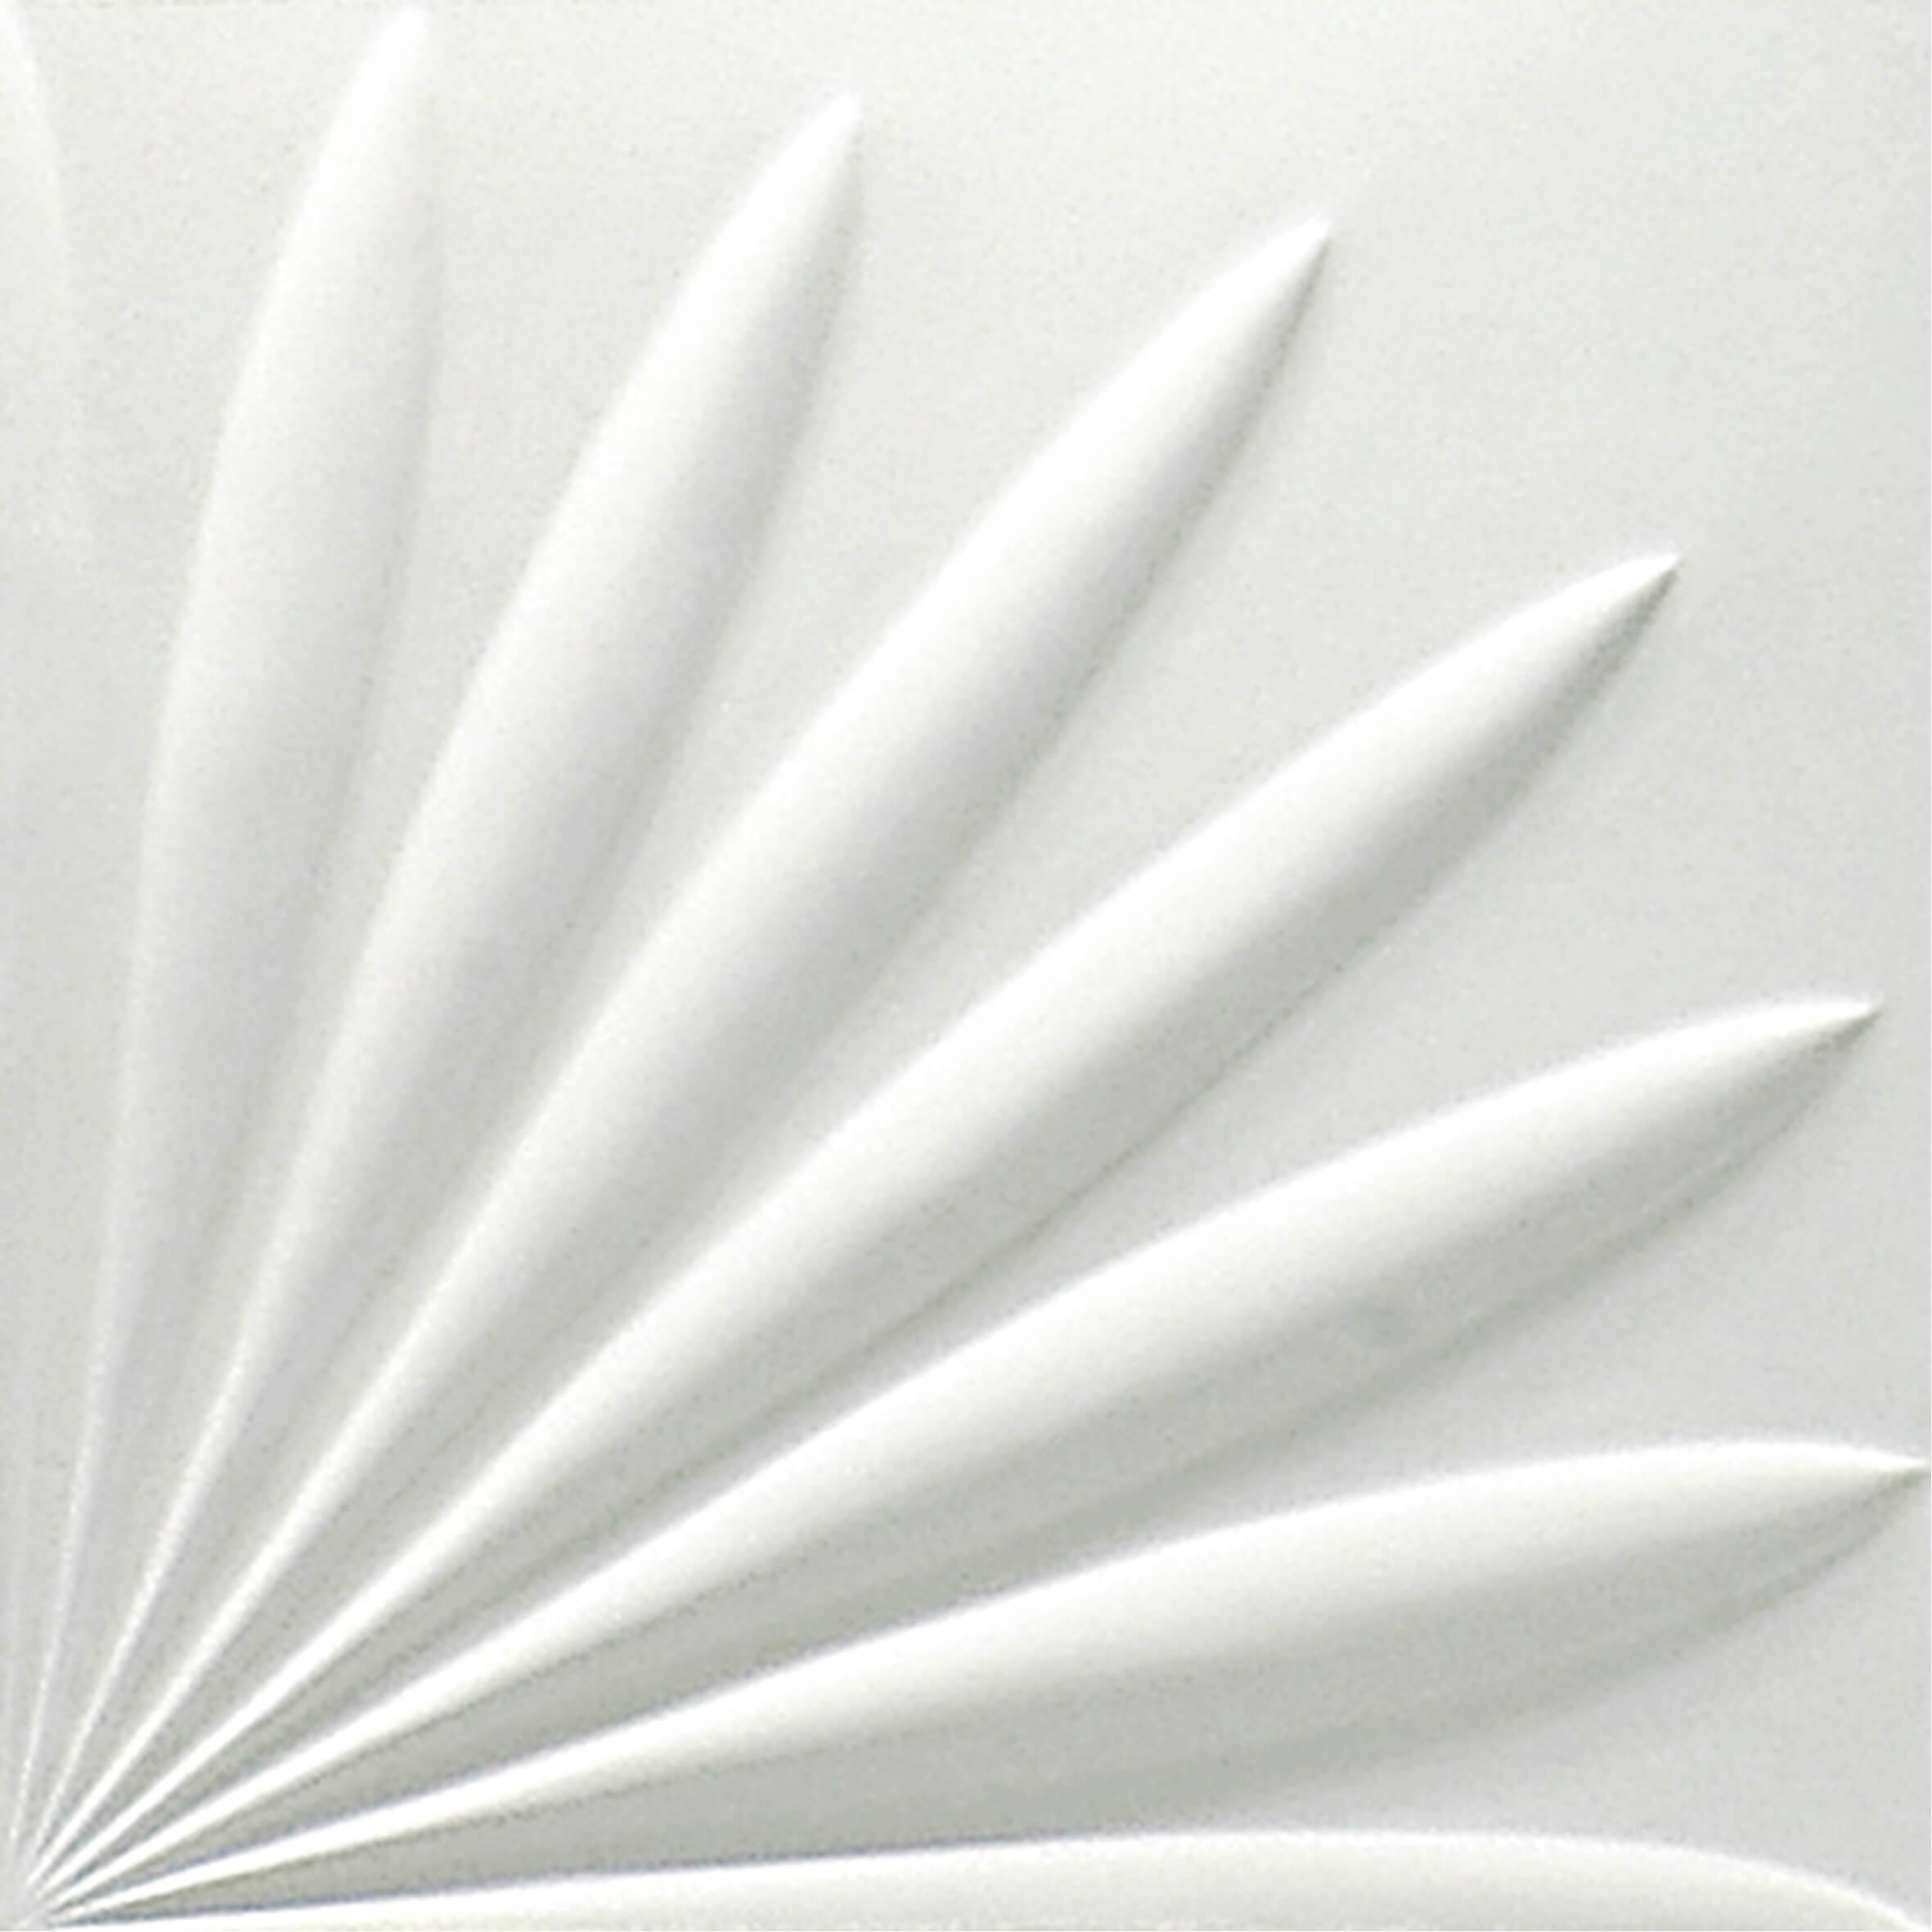 3D Wall Art – Rd Decor In Best And Newest Blossom White 3D Wall Art (Gallery 10 of 20)